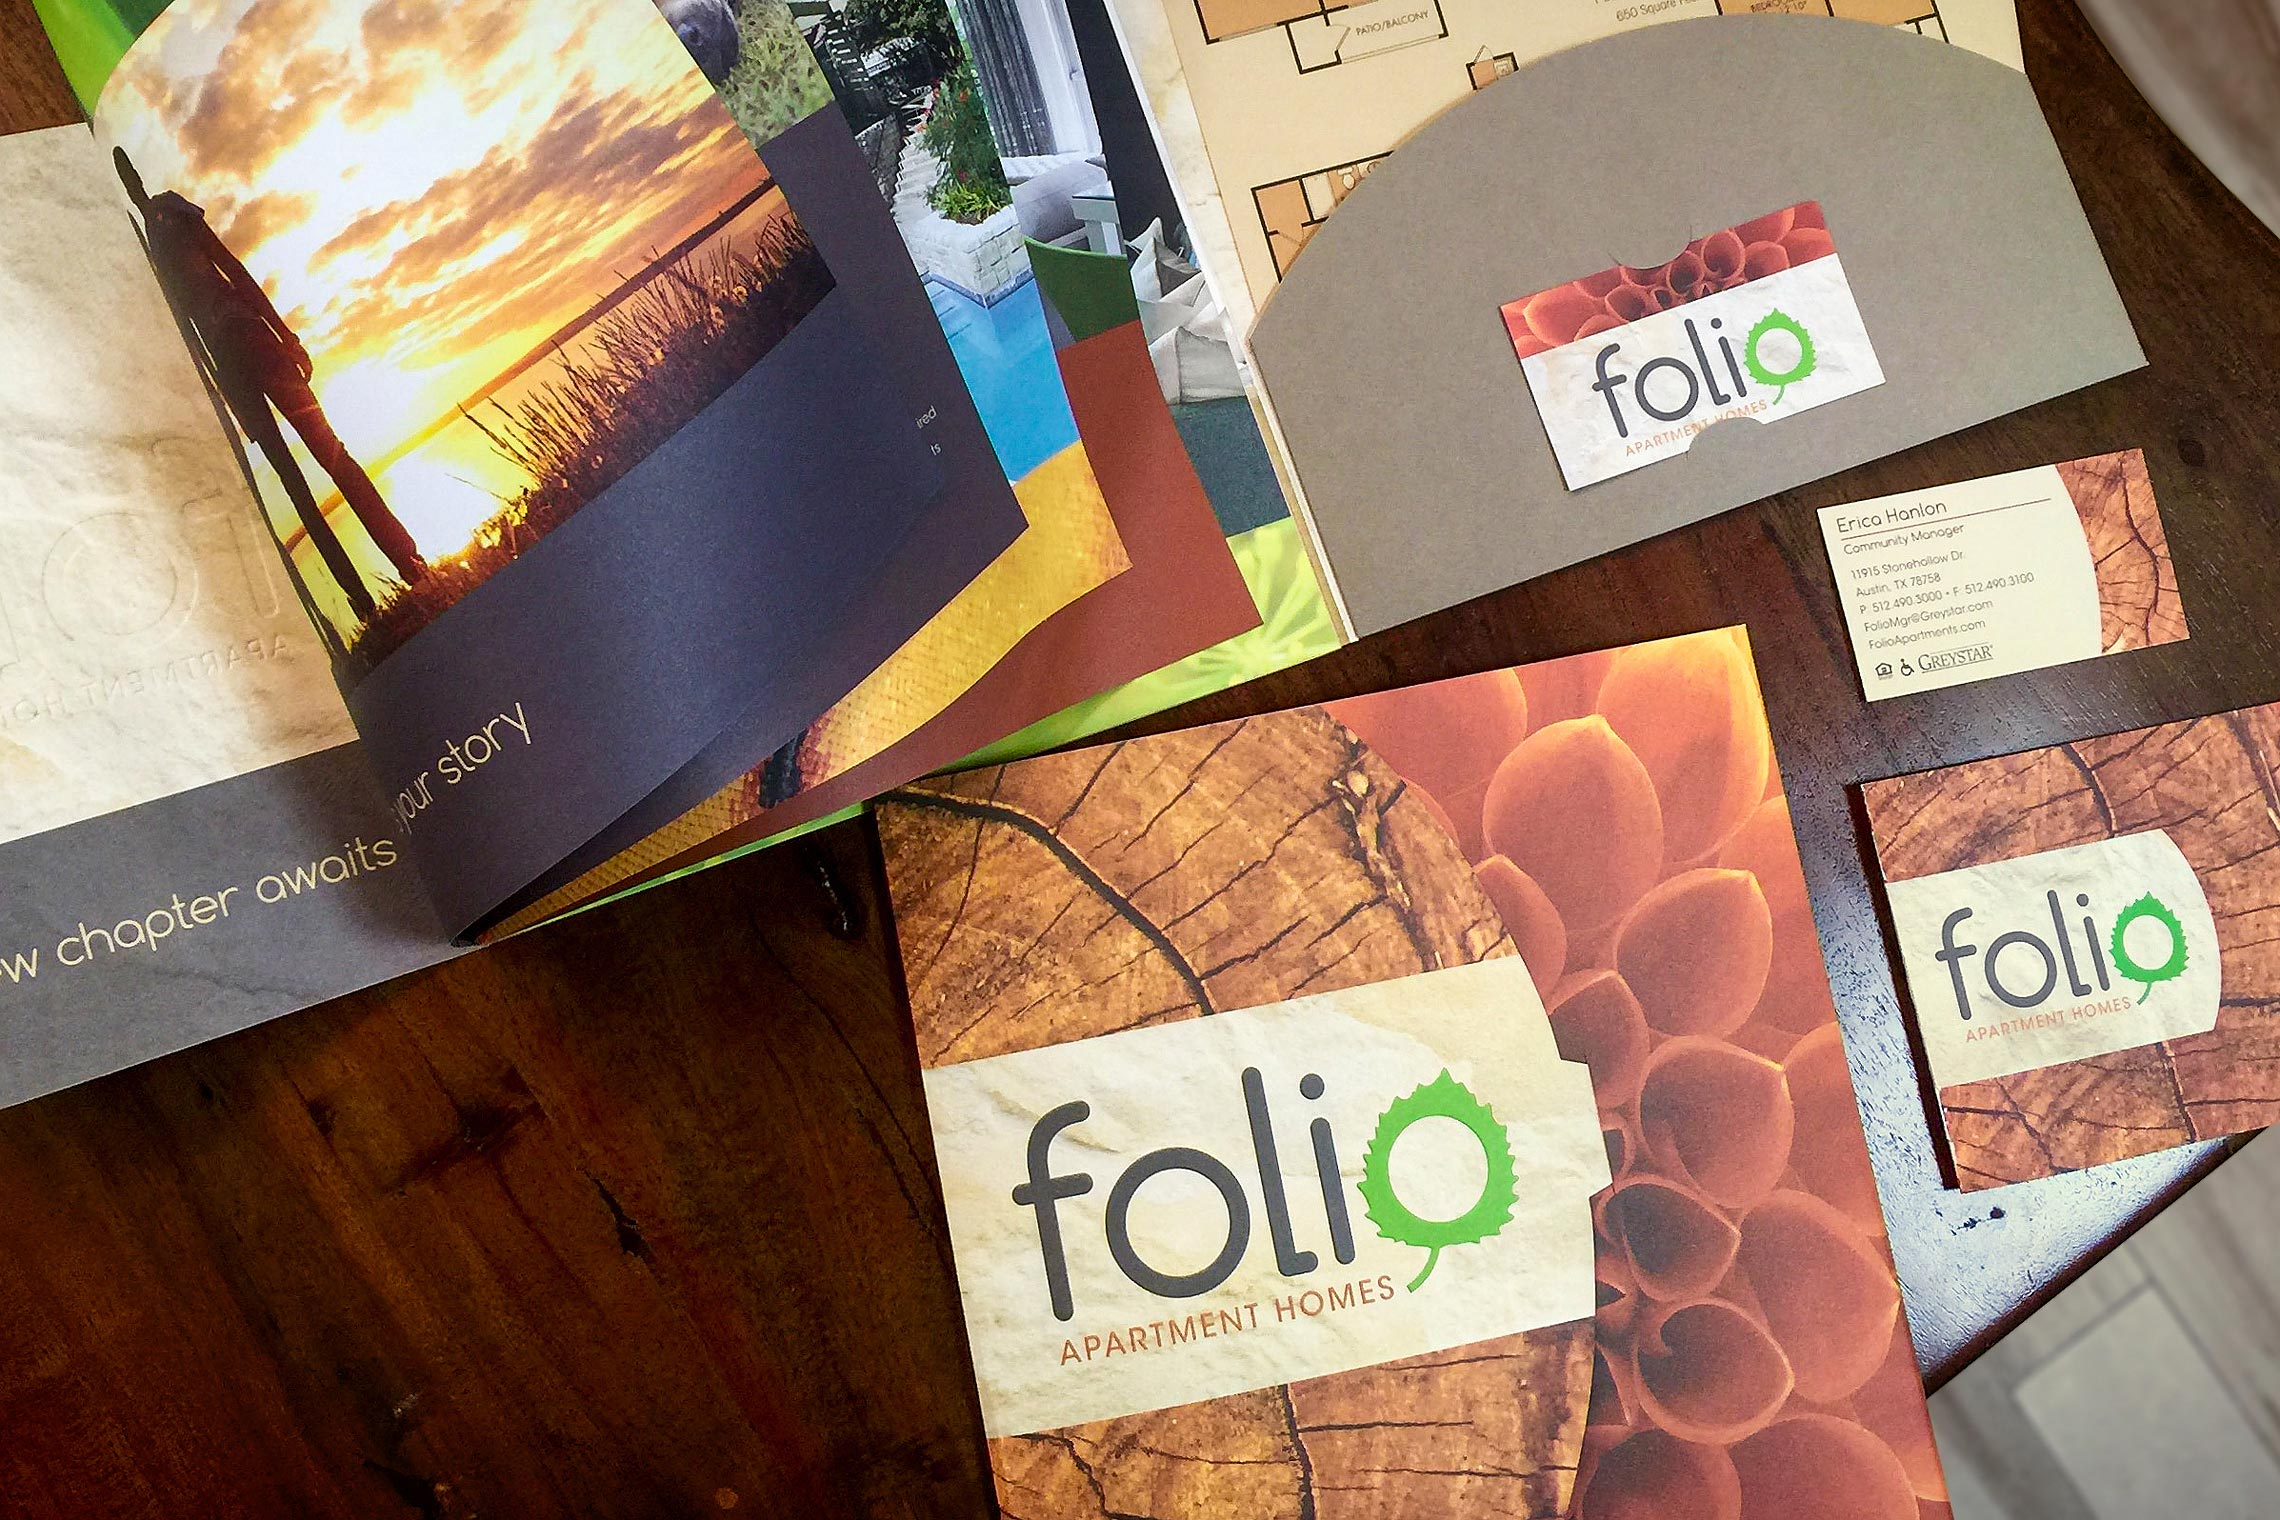 Folio Apartment Homes Custom Collateral - Pocket Folder Brochure with Floor Plan Inserts and Business Card Slit